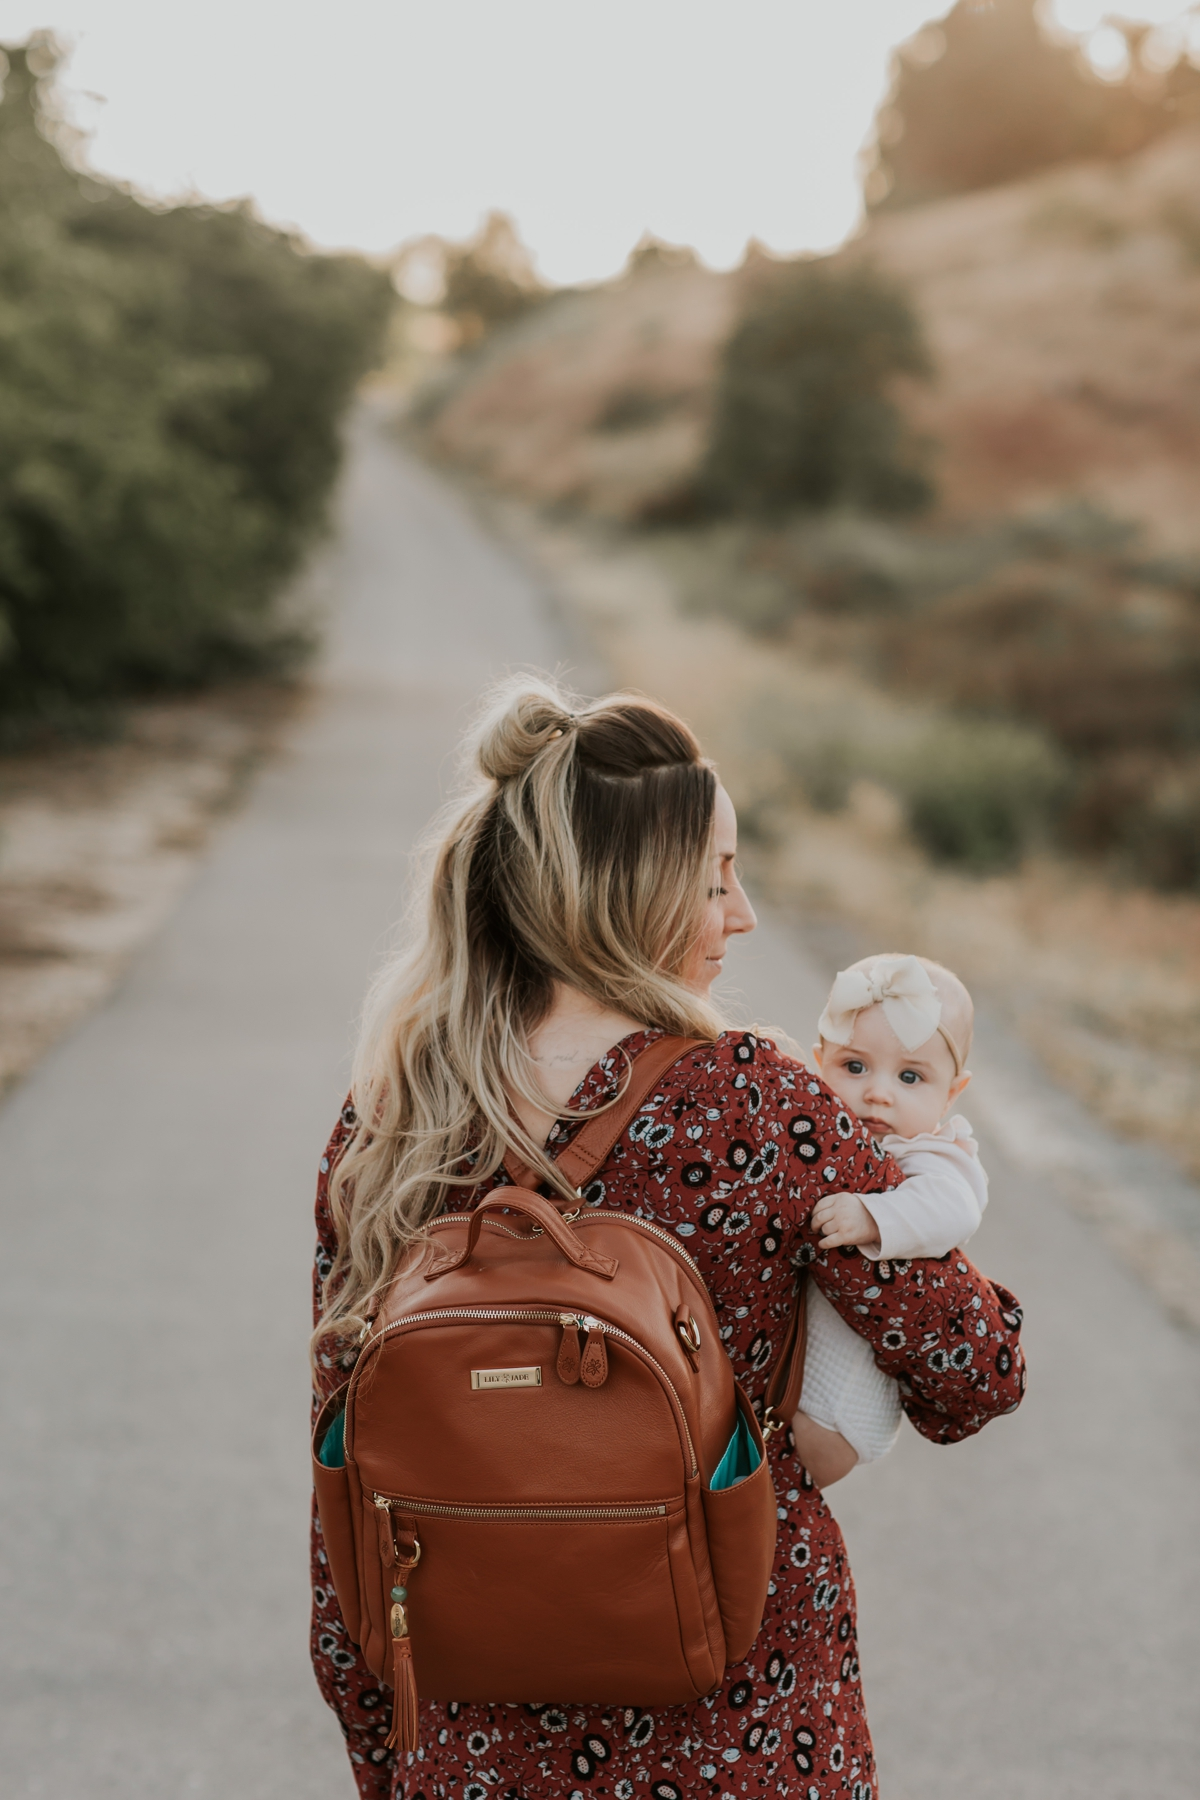 Kandis_Marino_Photography_Lifestyle_Lily_Jade_Diaper_Bag_Influencer_Abassador_Baby_Mom_Blogger_Mommy_Blog_Newborn_Pregnancy_0027.jpg